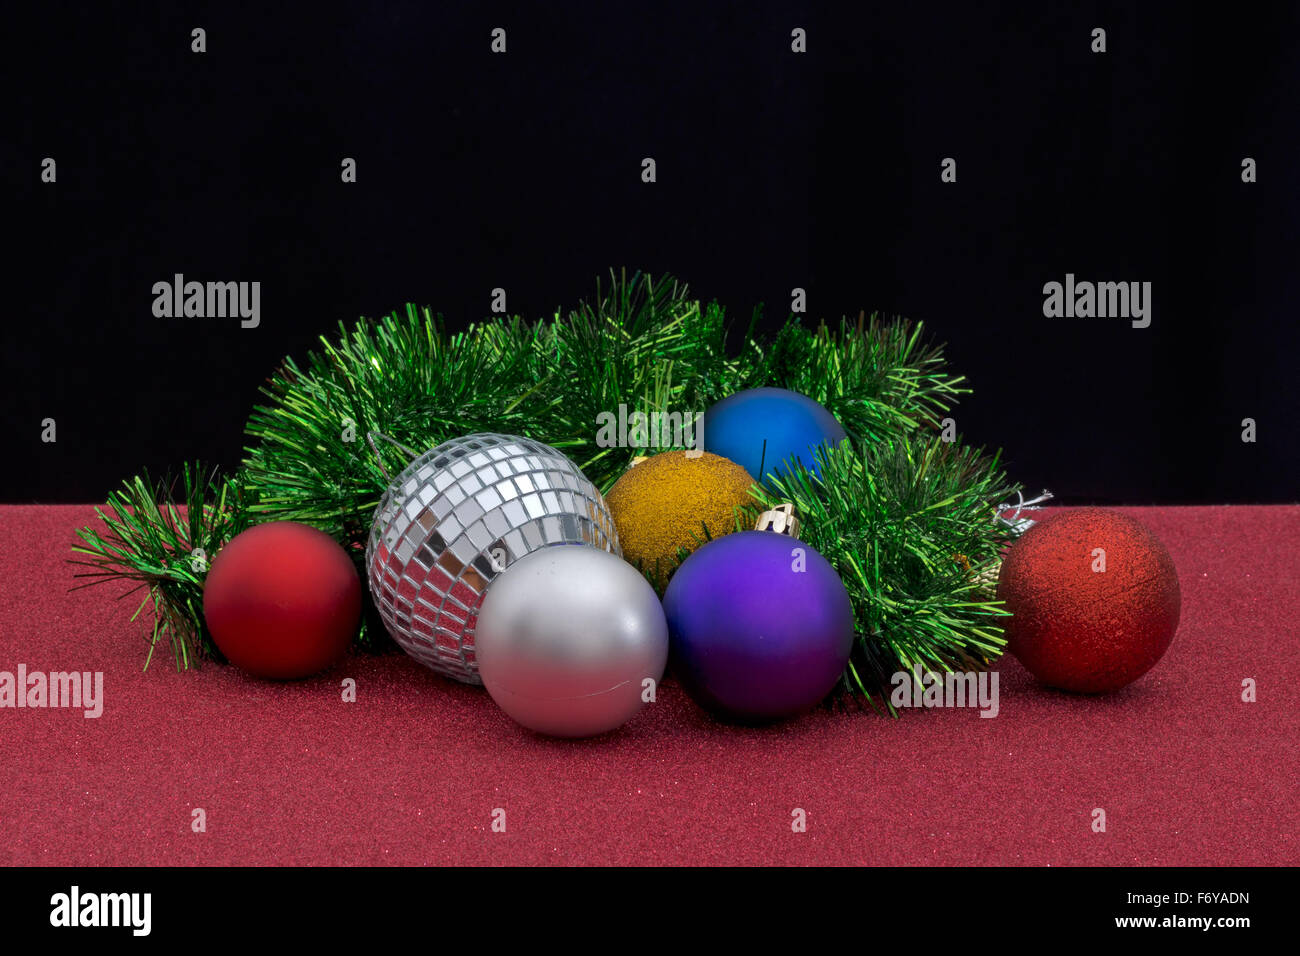 Tinsel Garland Stock Photos & Tinsel Garland Stock Images - Alamy